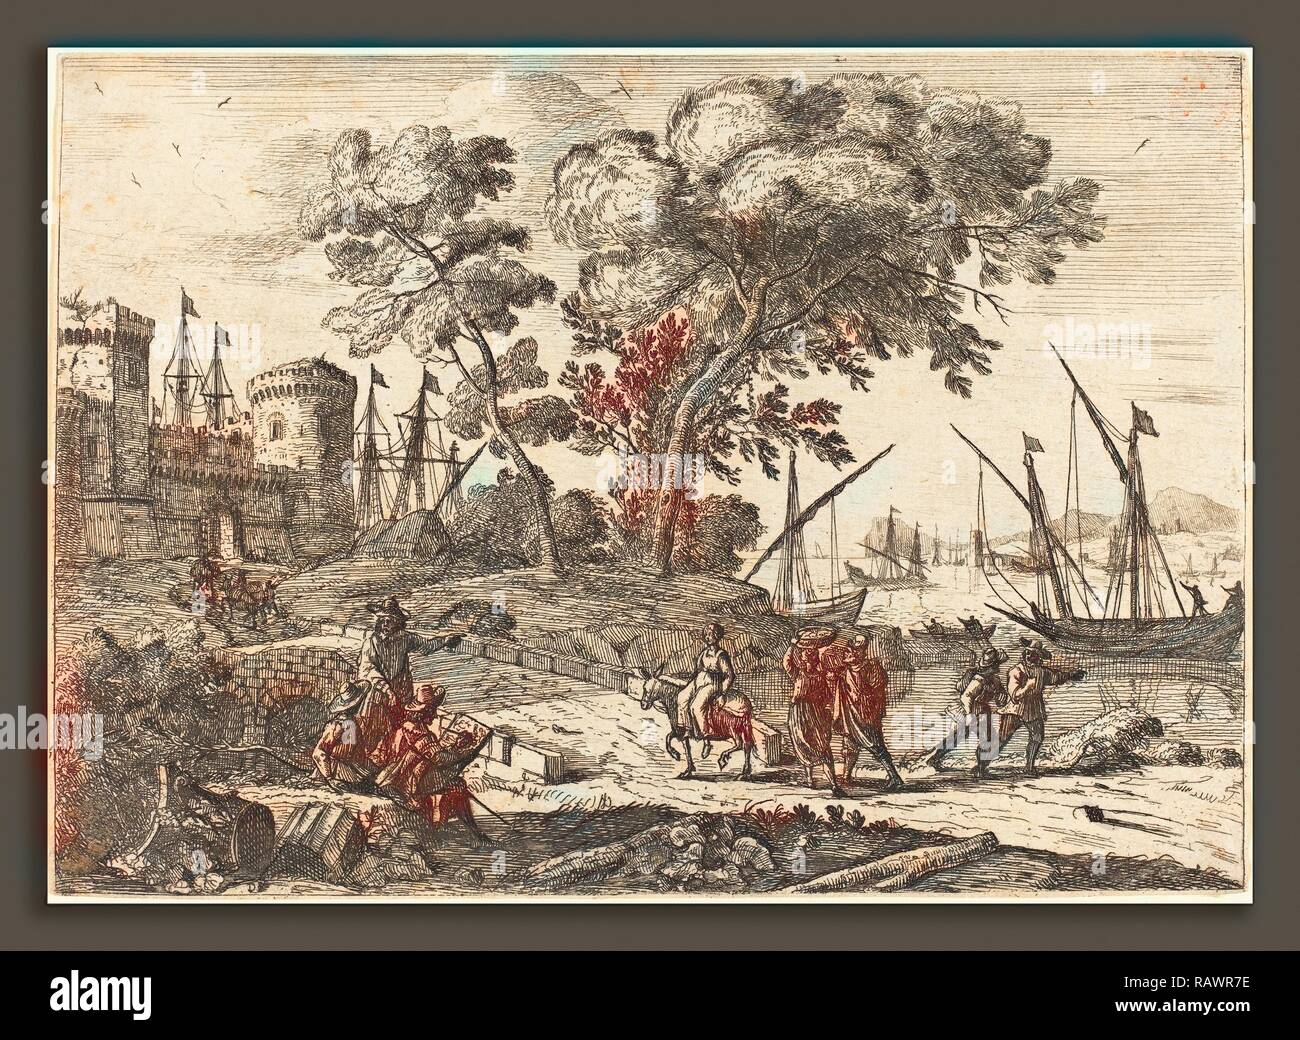 Claude Lorrain (French, 1604-1605 - 1682), Coast Scene with an Artist (Le dessinateur), c. 1638-1641, etching reimagined - Stock Image